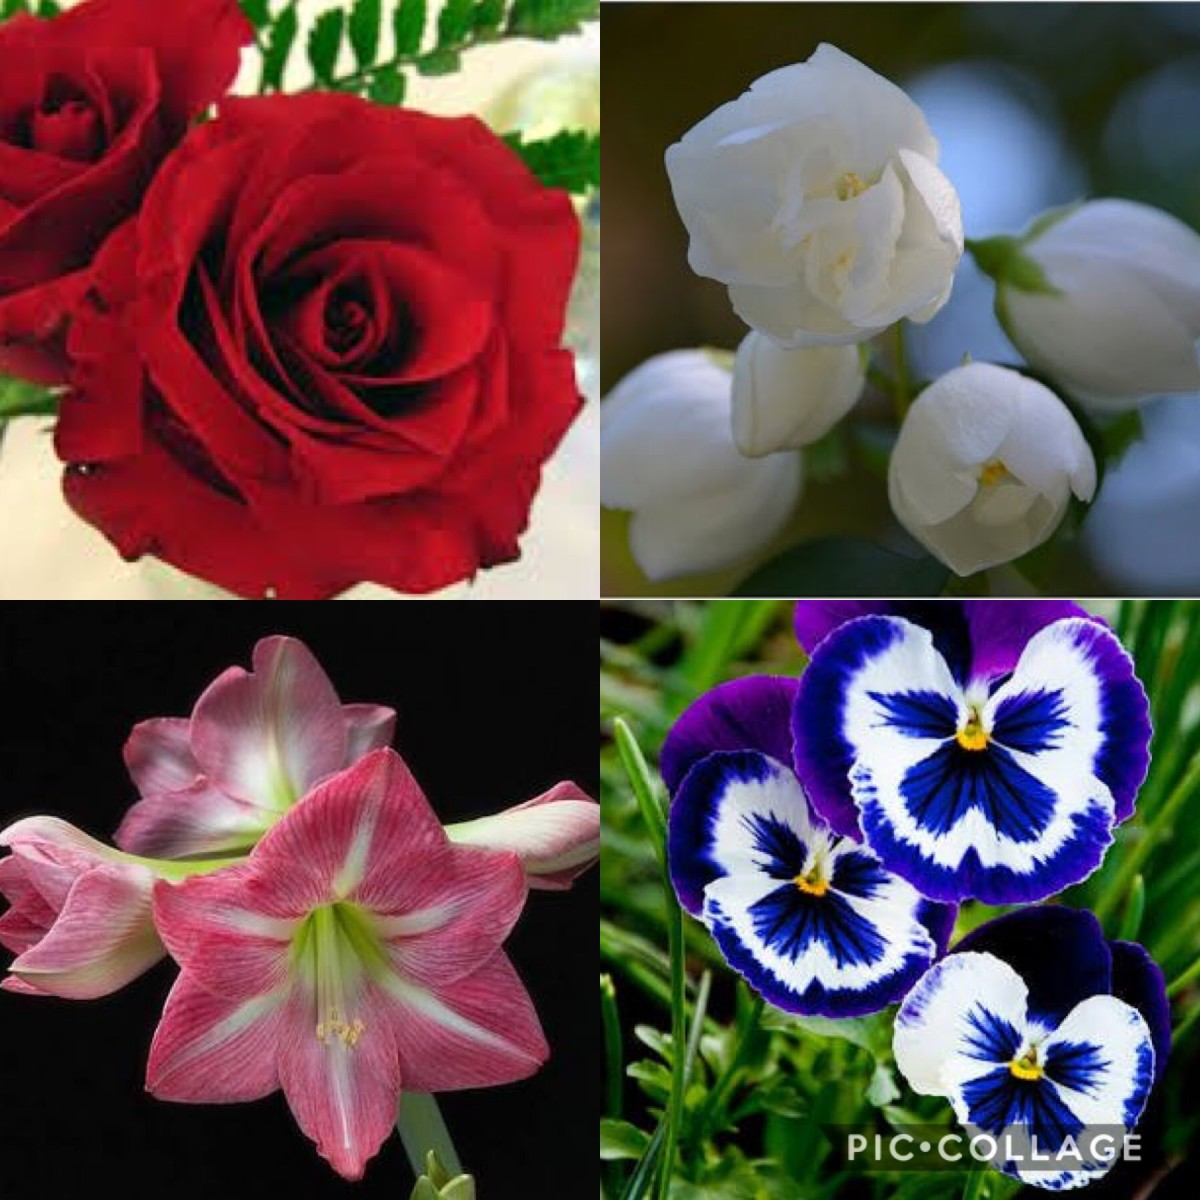 Flowers of February—Bright Red Rose, Pink Lilies, Jasmine, Pansies